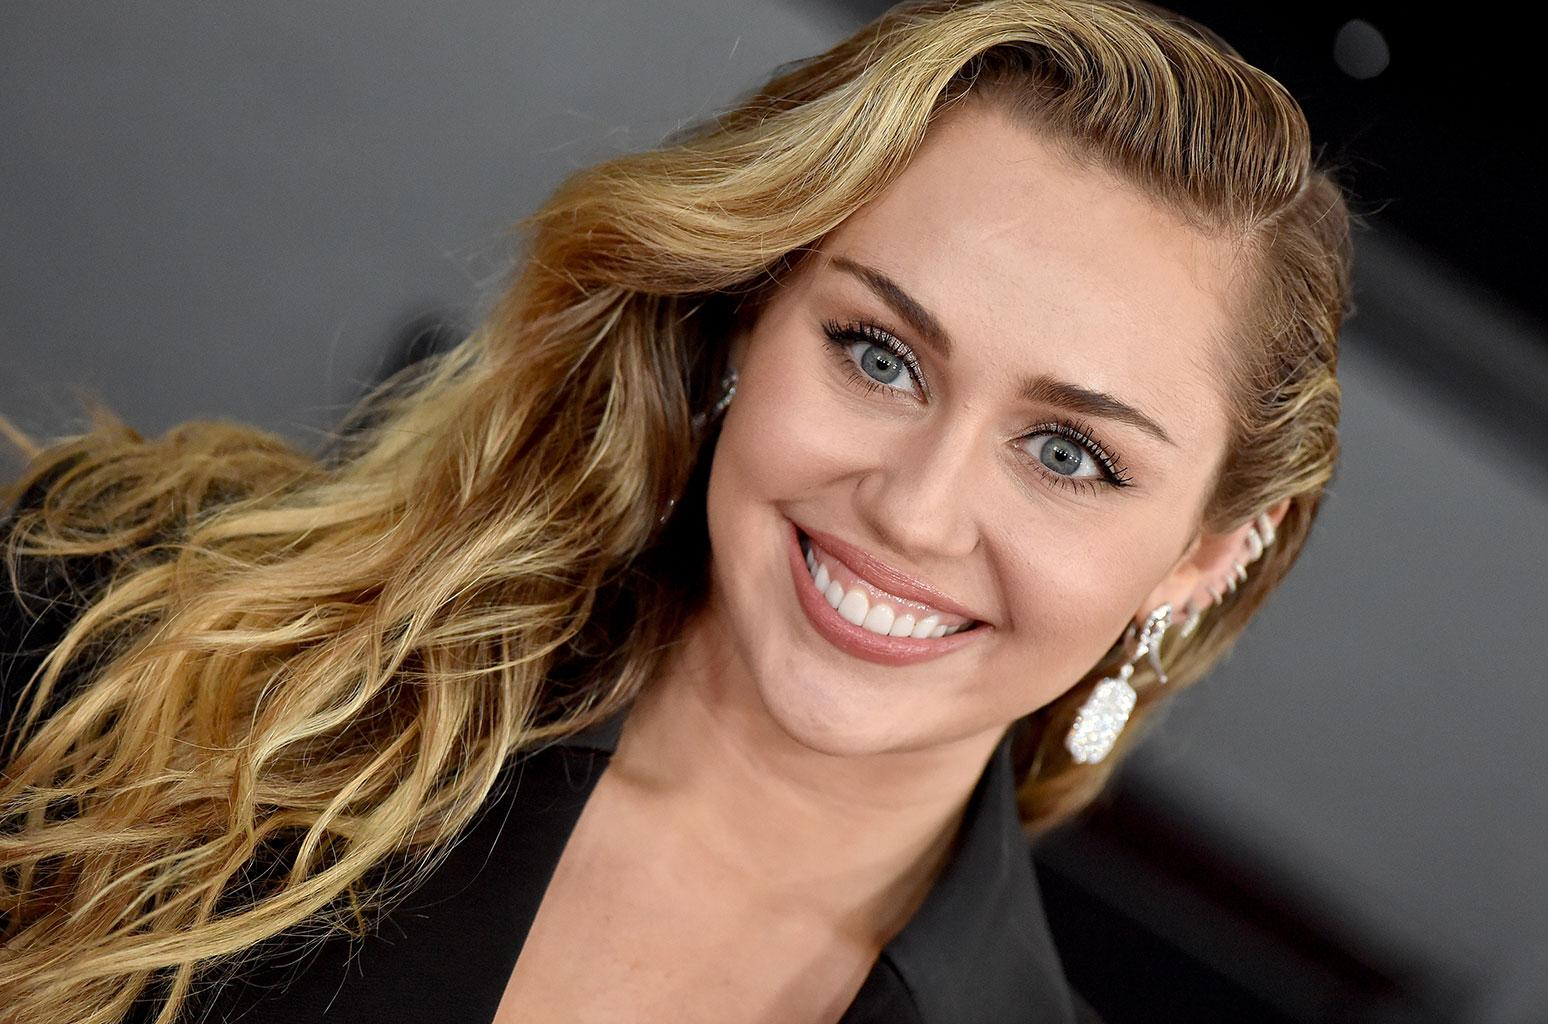 Miley Cyrus Yells #FreeBritney While Pop Star Gets Back To Work Amid Rumors She Is Being Controlled